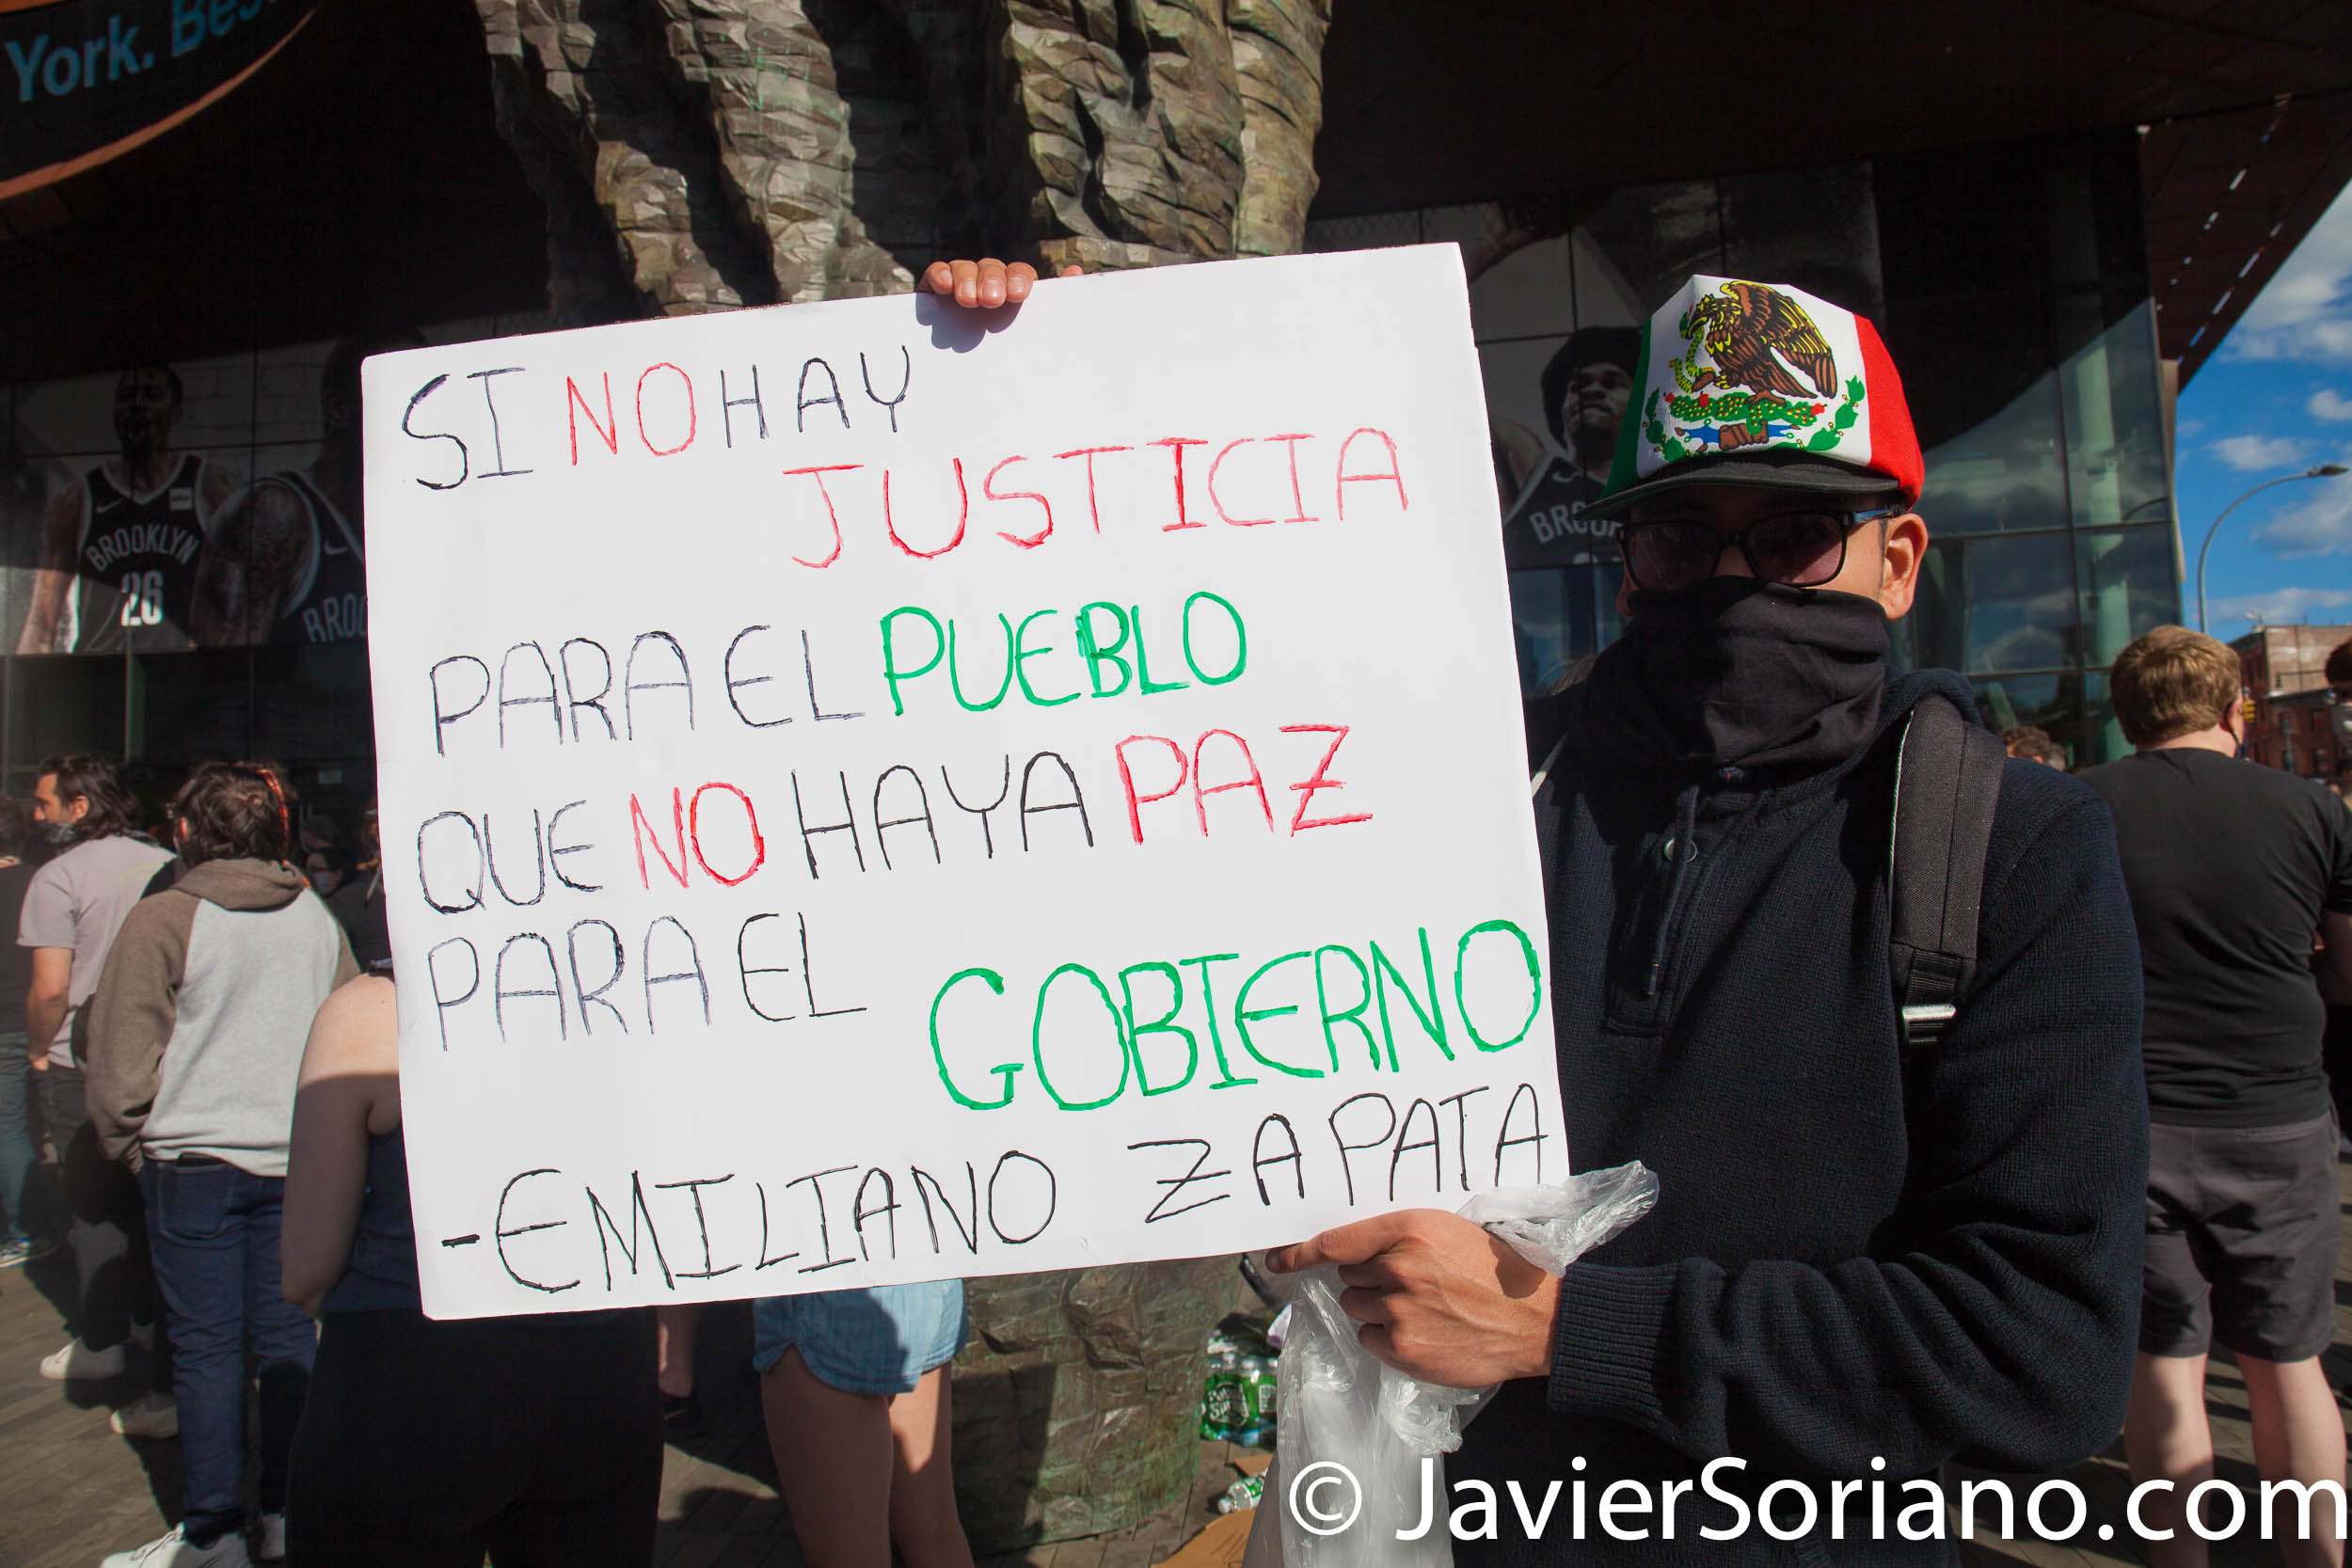 """Sunday, May 31, 2020. New York City -  Rally at Barclays Center, Brooklyn to demand justice for George Floyd, to support Black Lives Matter and to demand police accountability.   Mexican man with a sign that says, """"Si no hay justicia para el pueblo, que no haya paz para el gobierno .""""-Emiliano Zapata (If there is no justice for the people, there is no peace for the government.""""_Emiliano Zapata).  Photo by Javier Soriano/www.JavierSoriano.com"""